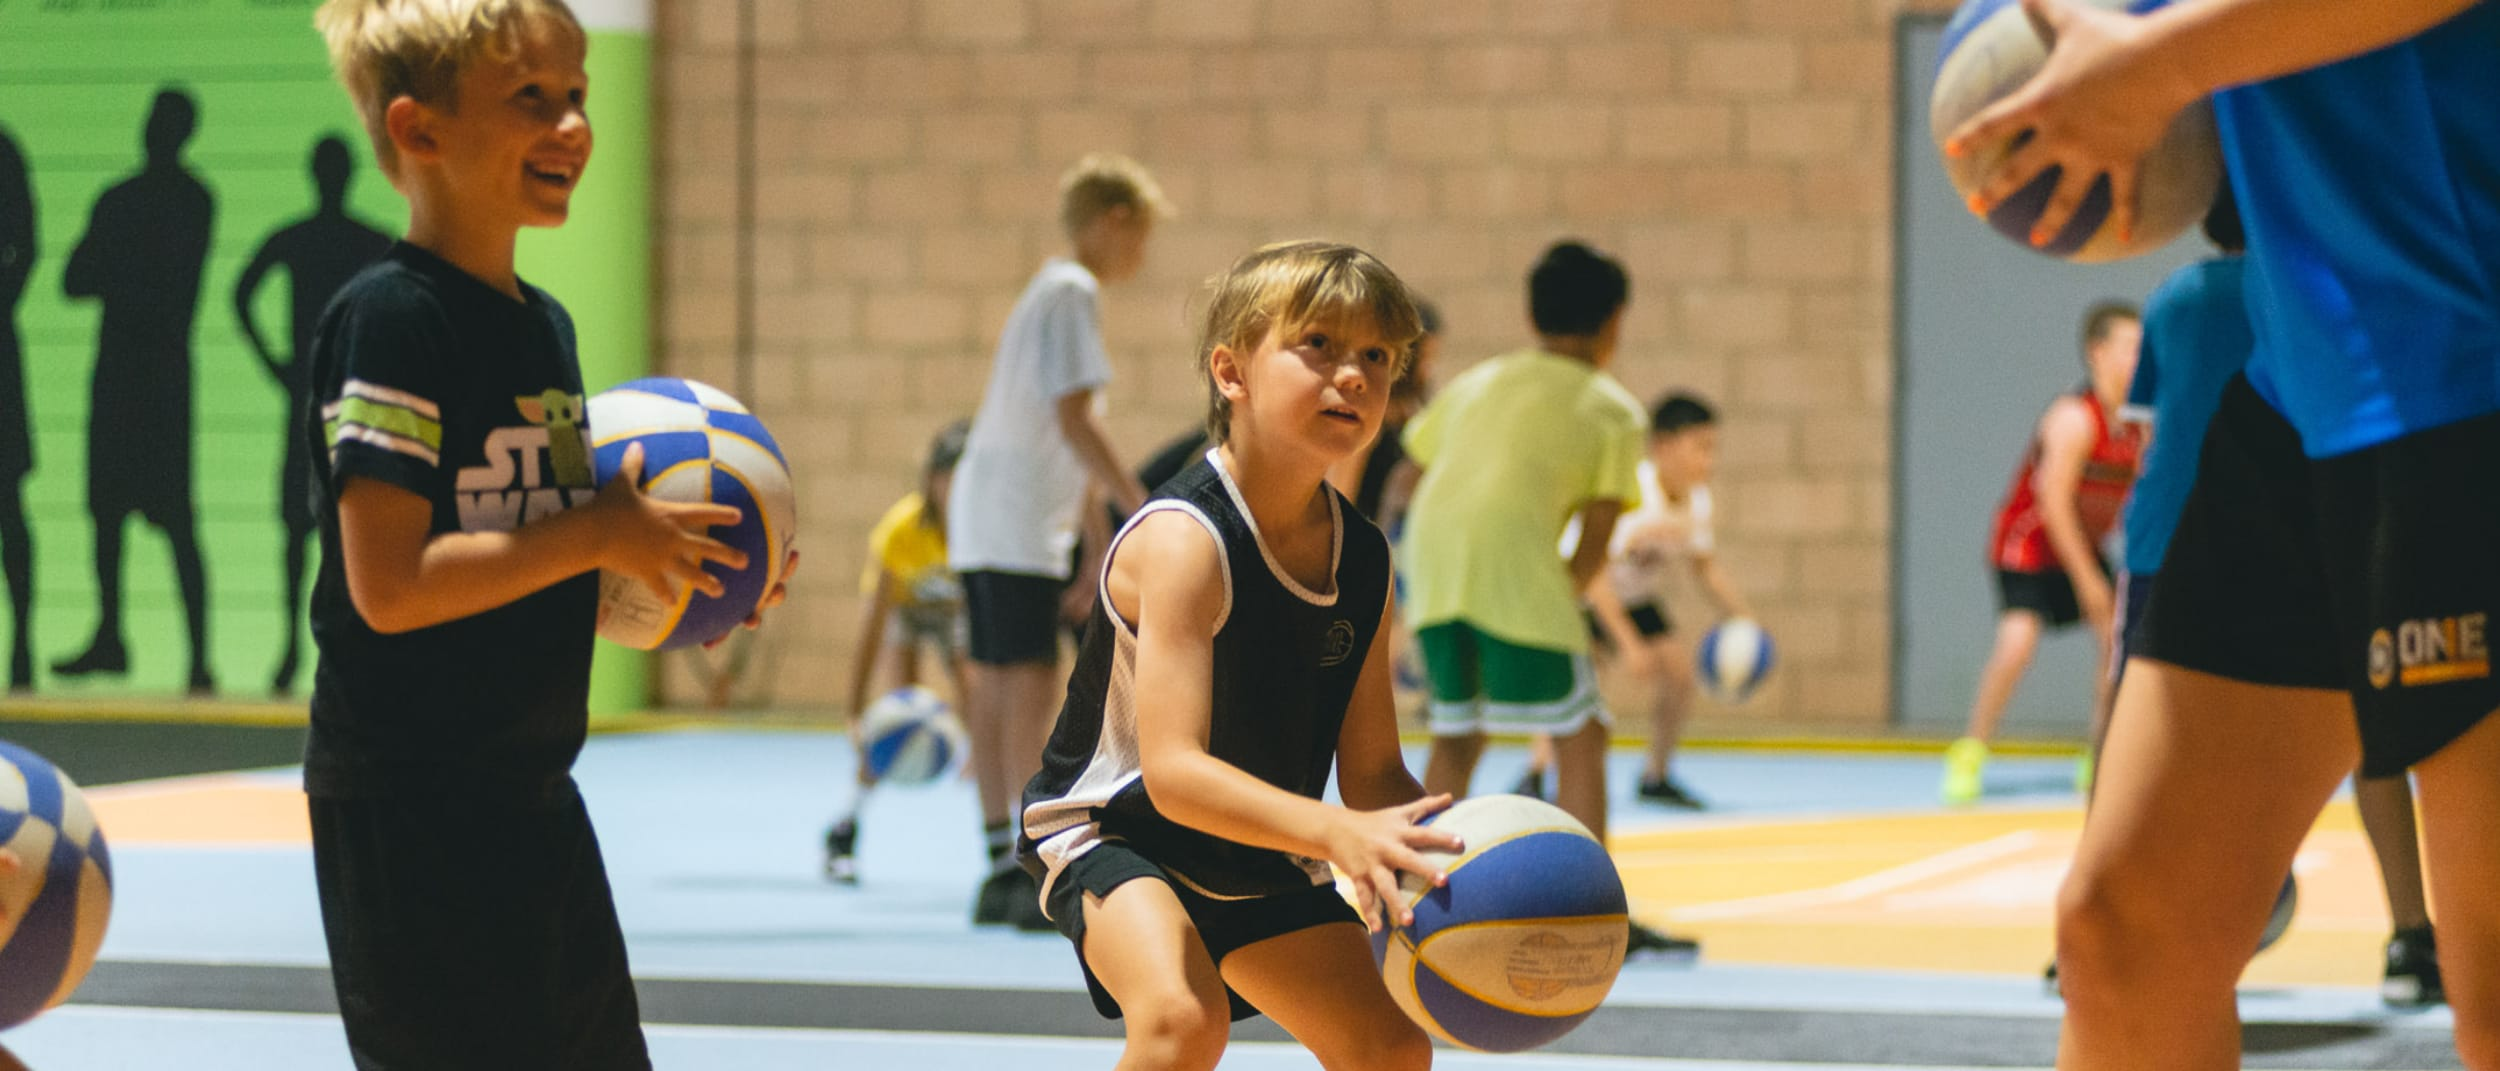 Basketball clinics for kids